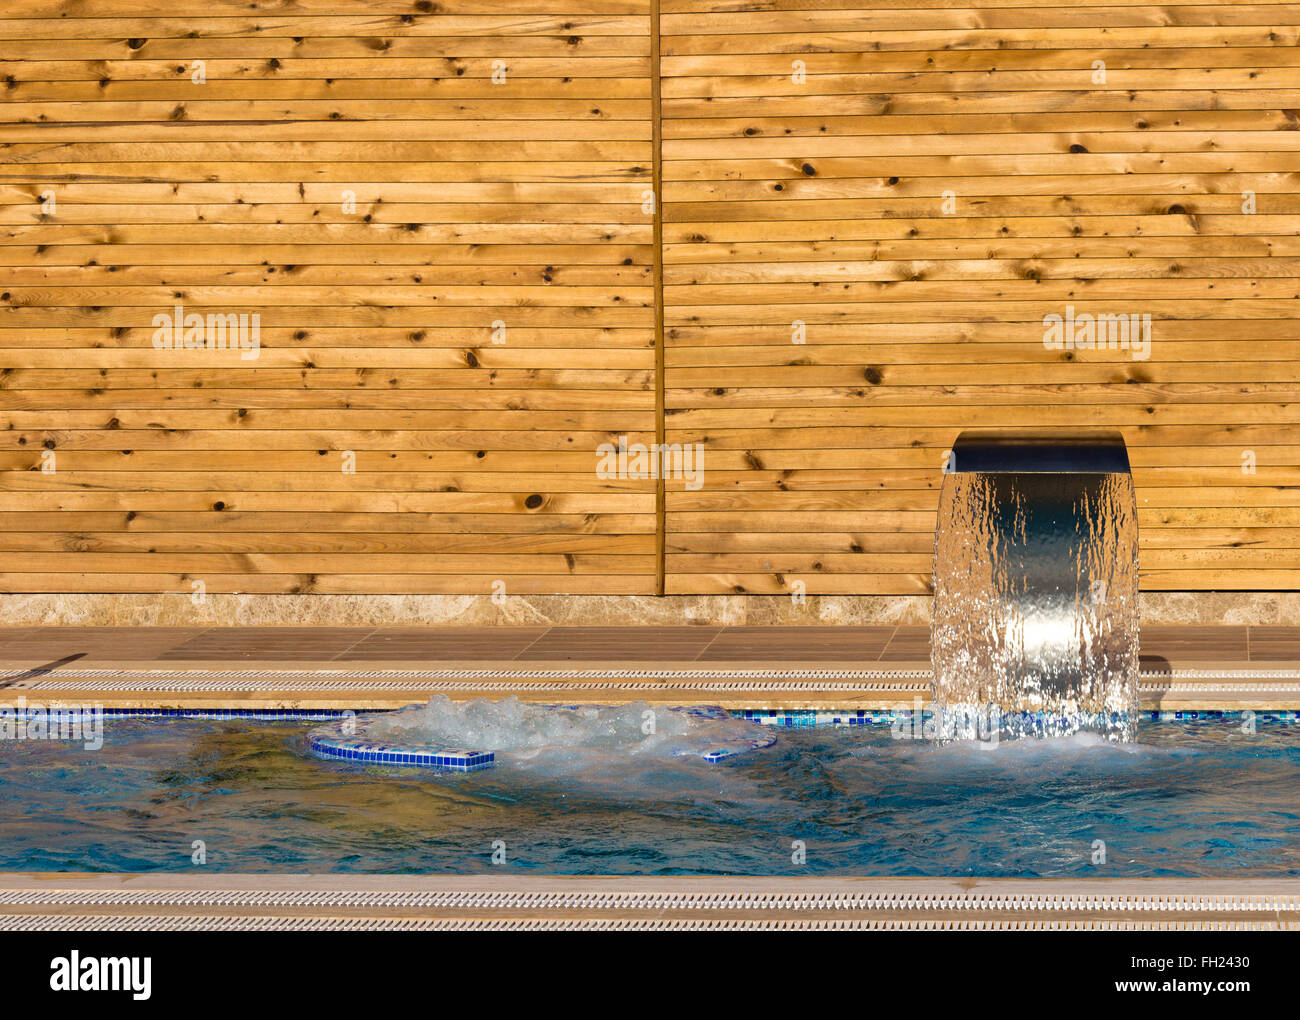 Spa hydrotherapy - Stock Image